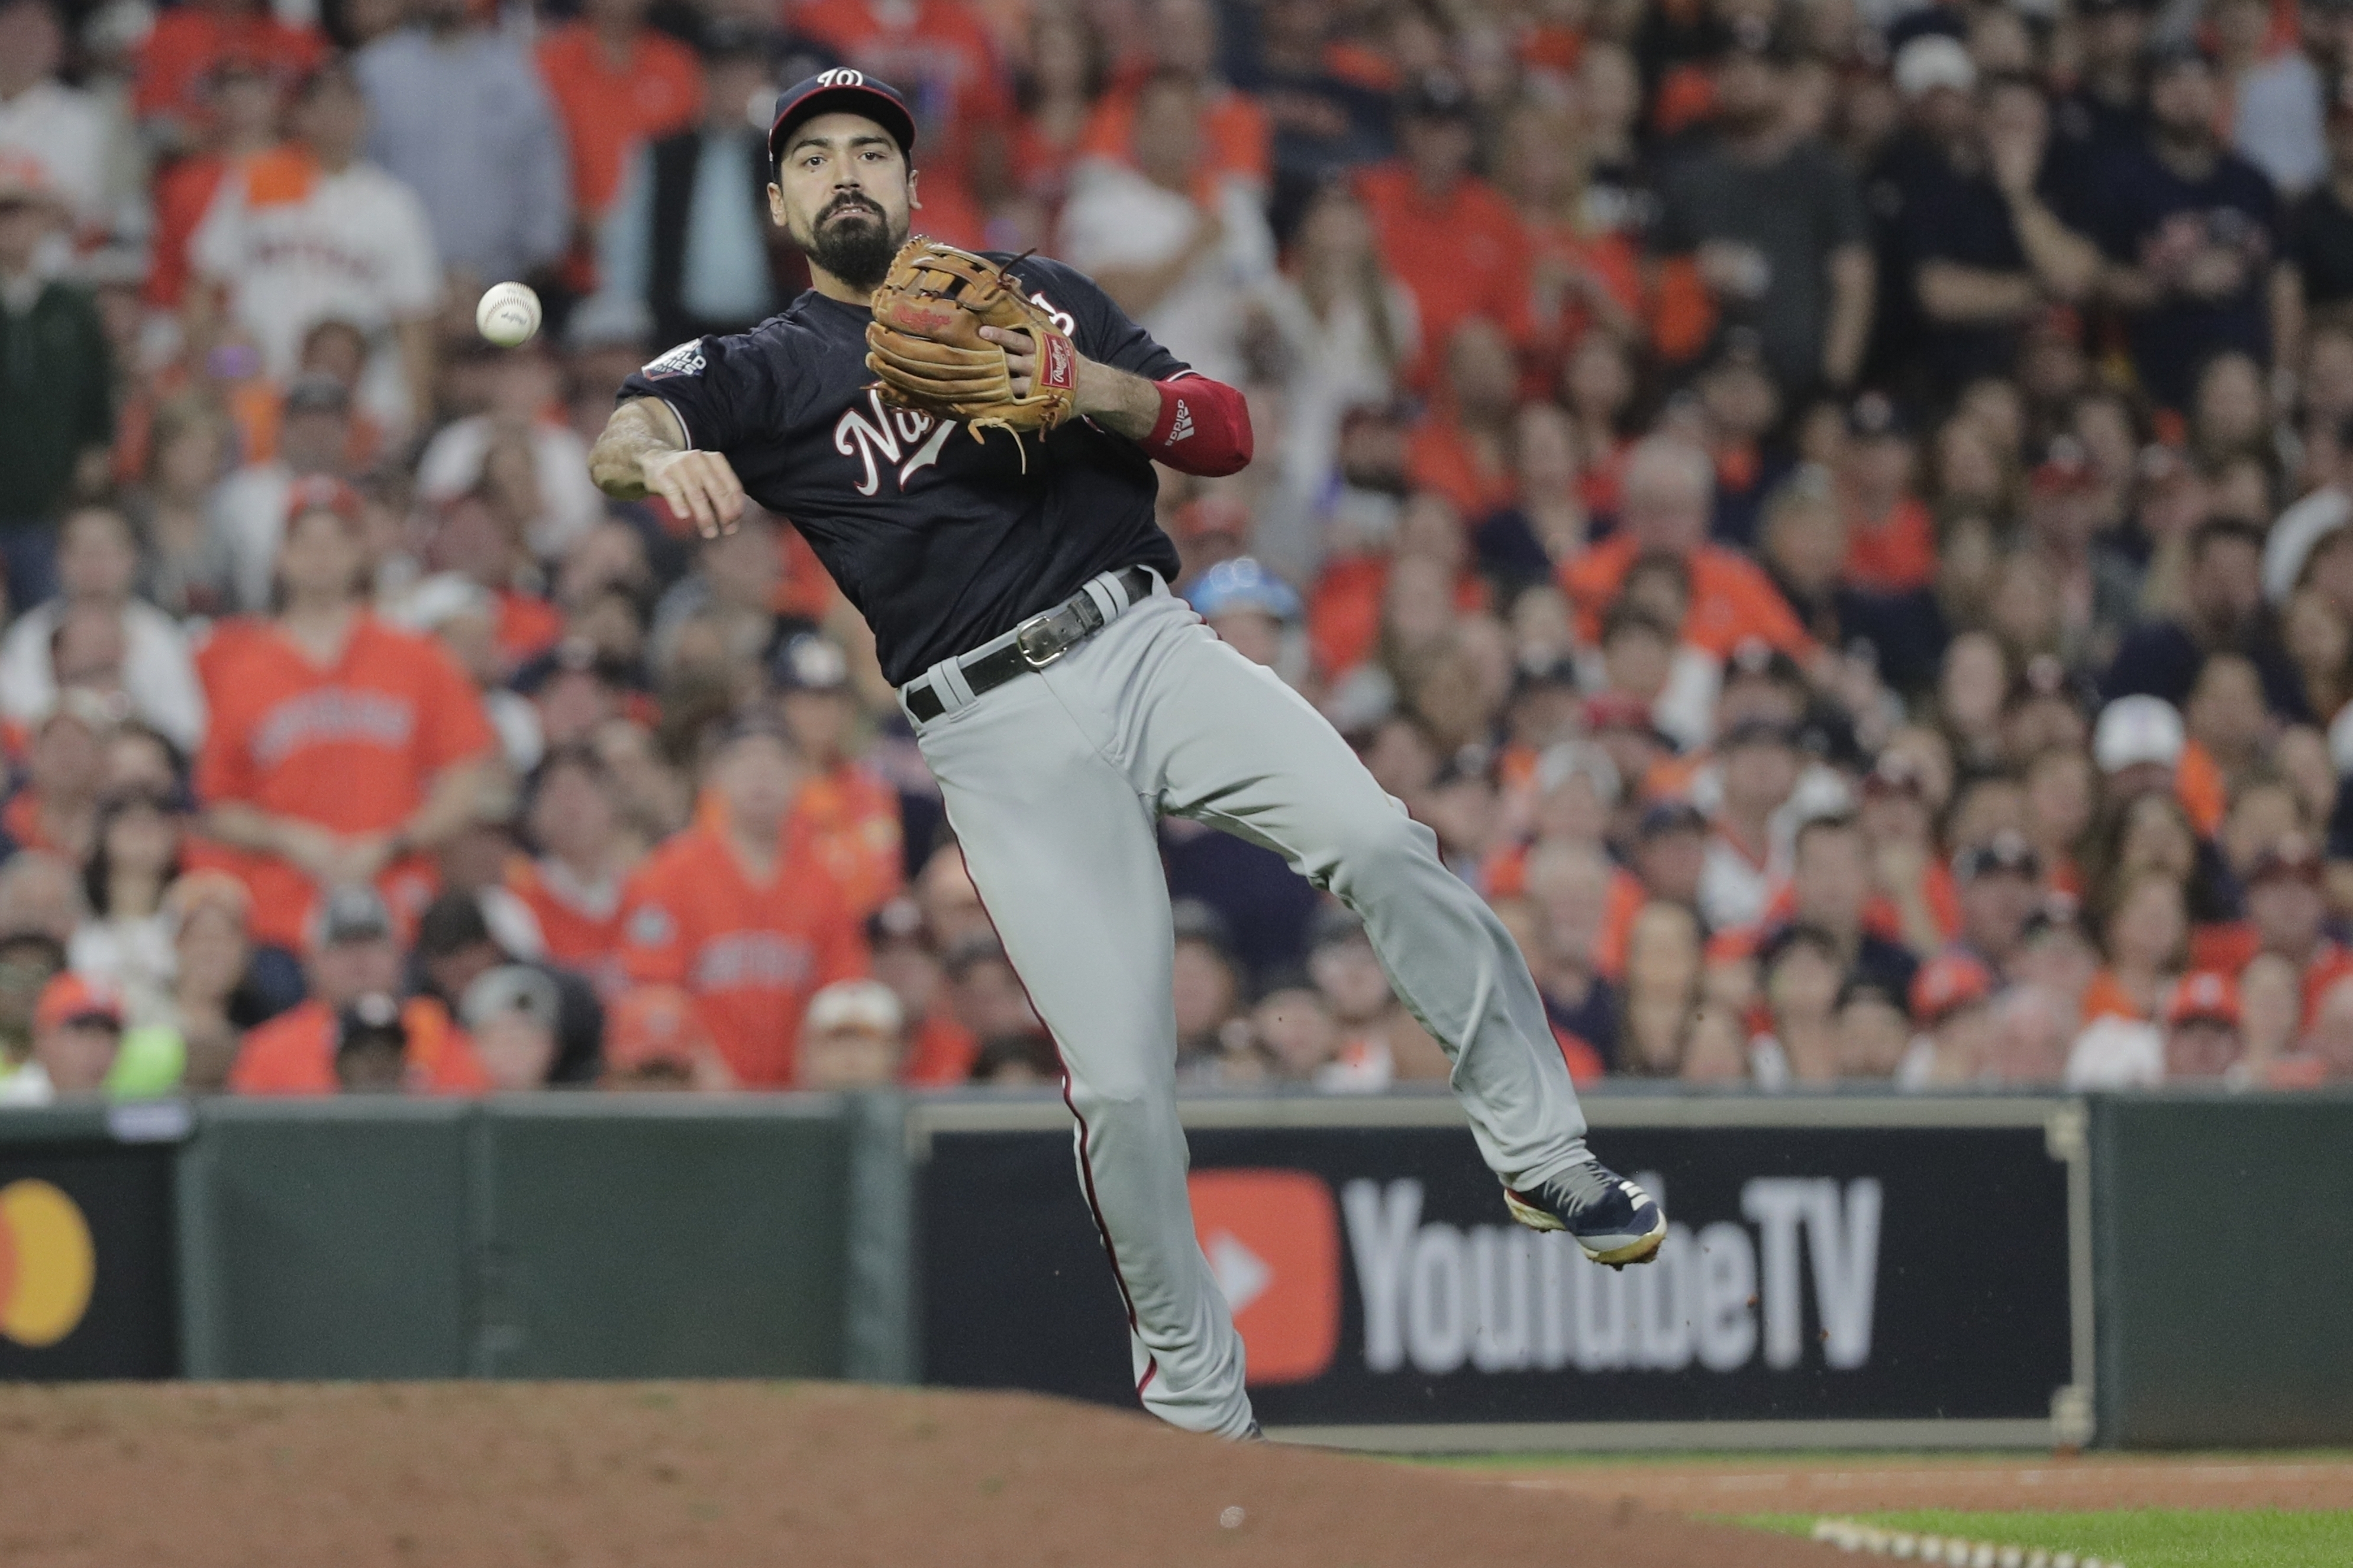 Third baseman Anthony Rendon and the Los Angeles Angels agreed to a $245 million, seven-year contract a person with direct knowledge of the deal told The Associated Press.